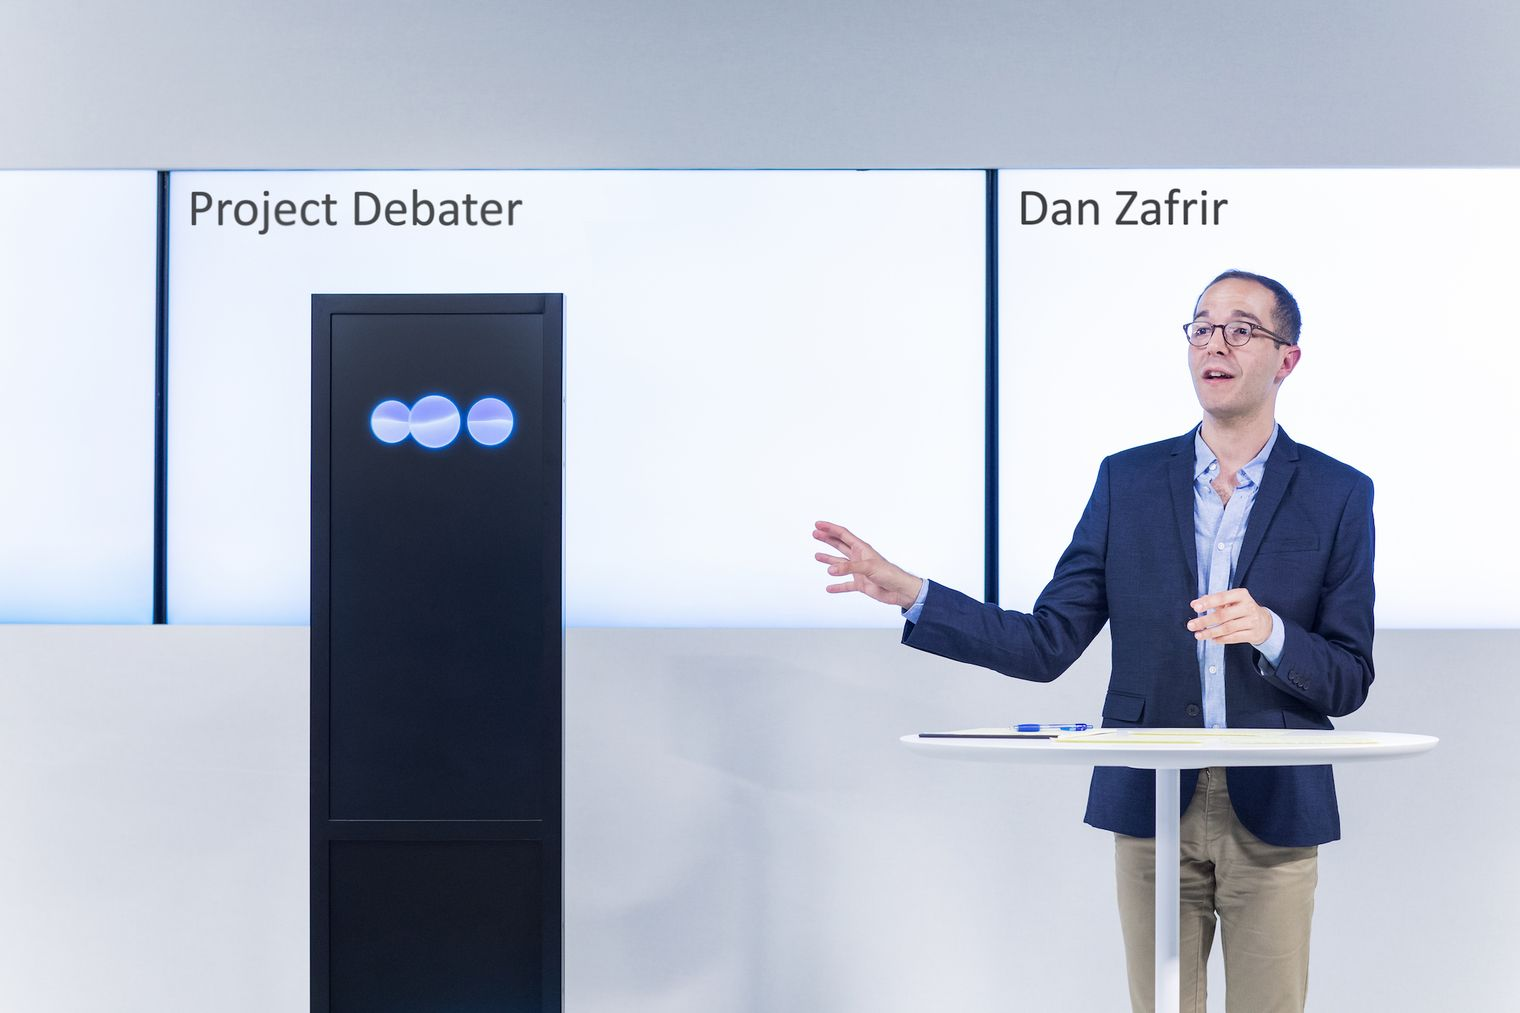 IBM Watson Project Debator with human opponent